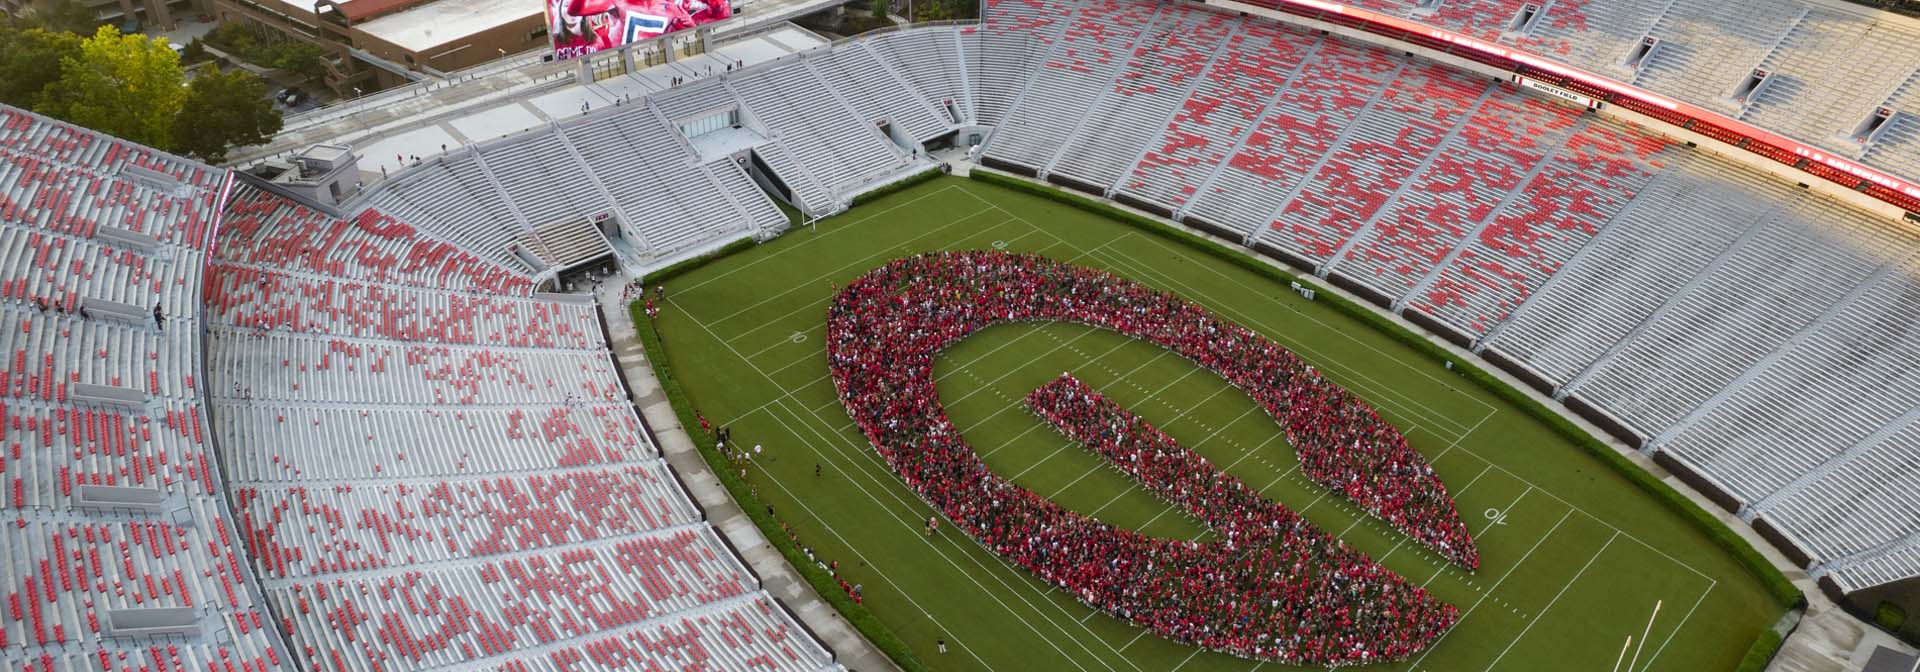 UGA - Sanford Stadium with students forming the letter g on the field